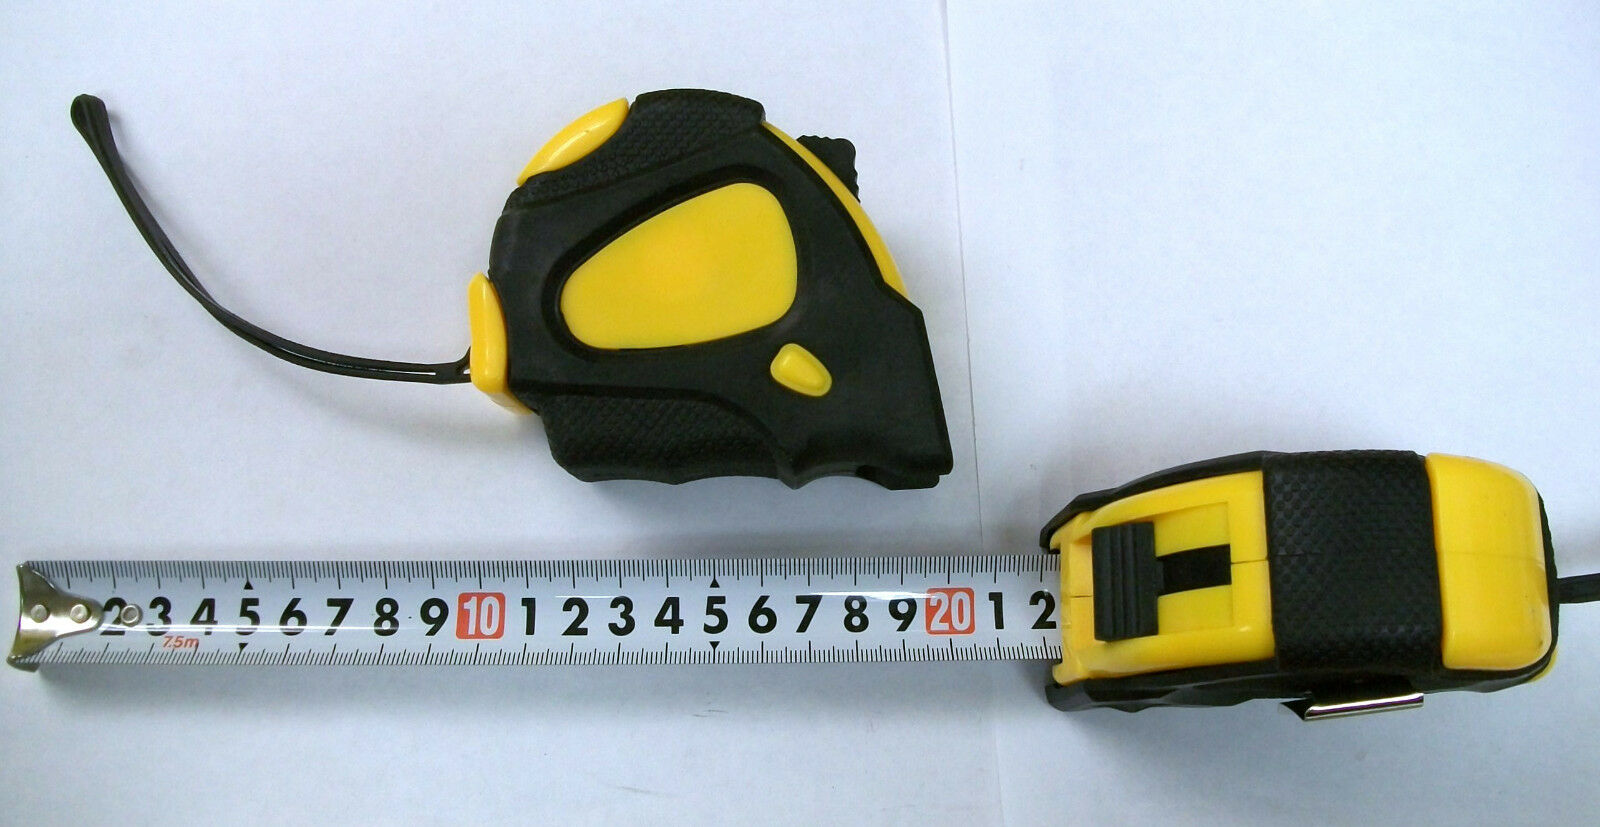 7.5m Metric Tape Measure BULK --  WT-168 Lot of 6